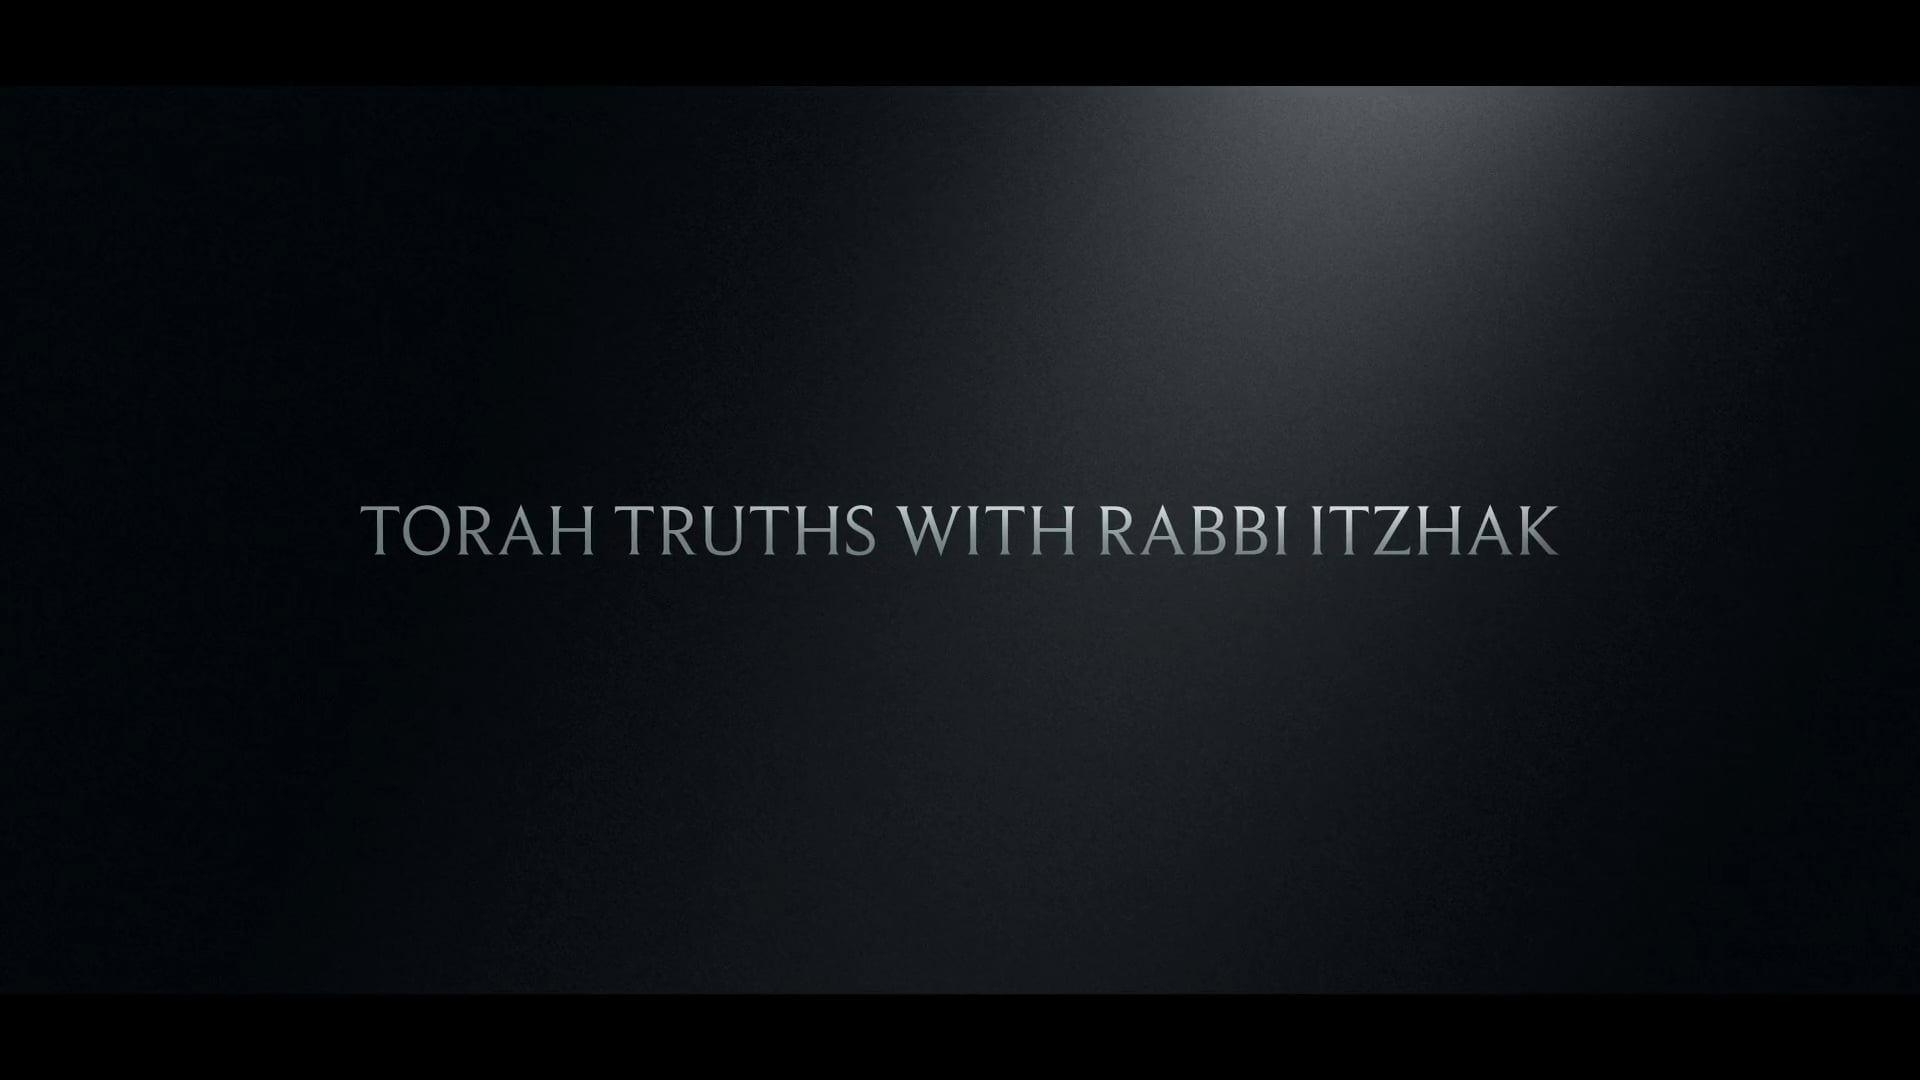 Torah Truths